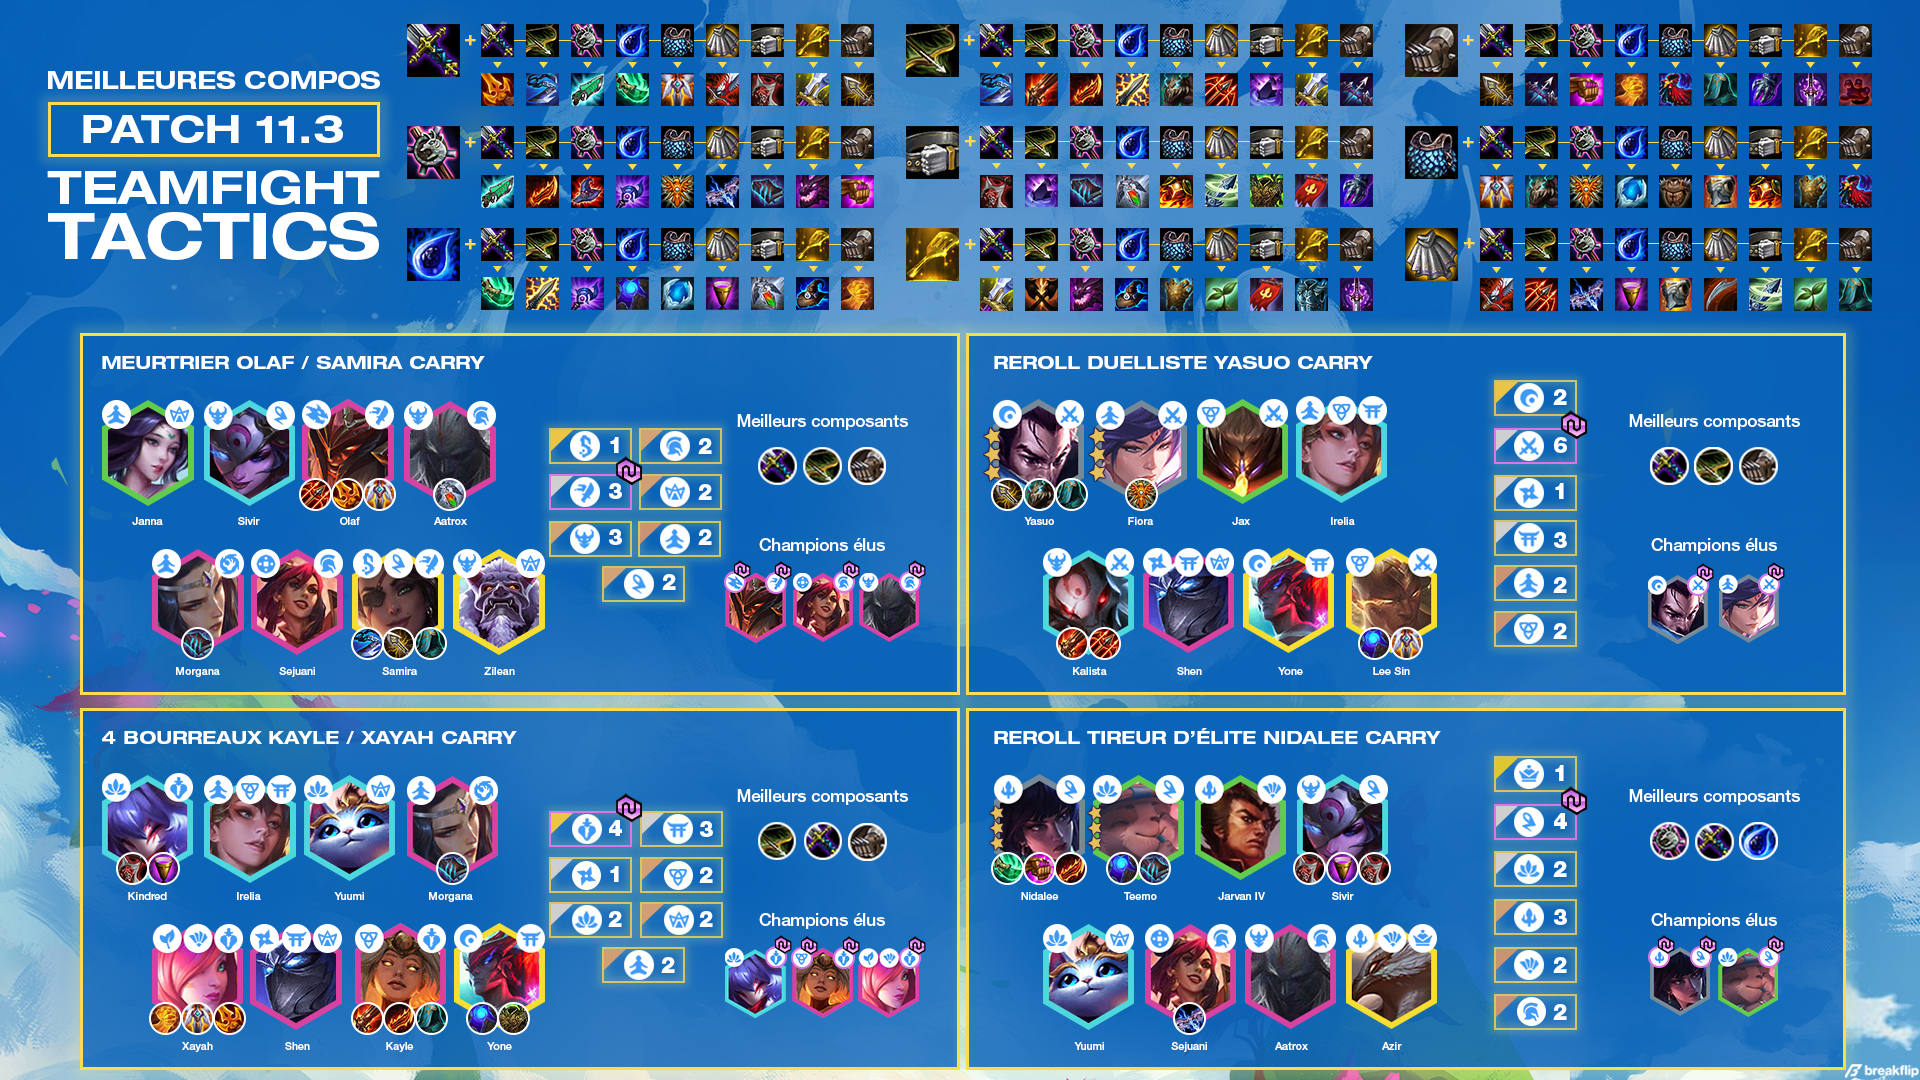 TFT-Cheat-Sheet-Compos-Patch-11.3